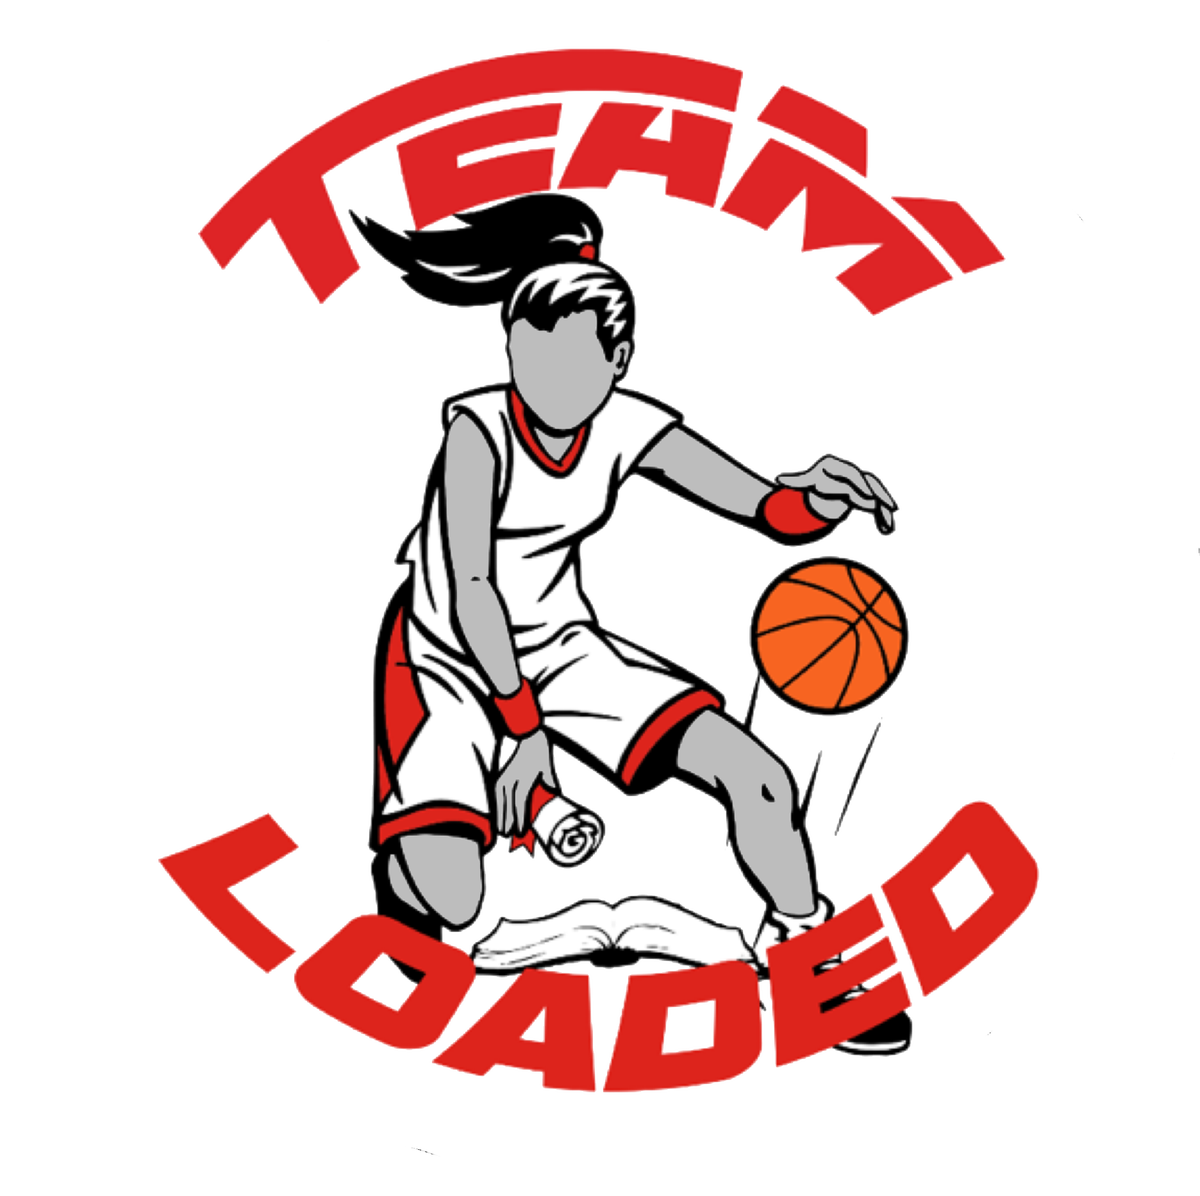 The basketball team clipart png black and white download Team Loaded- Building a Dynasty – Insider Exposure png black and white download